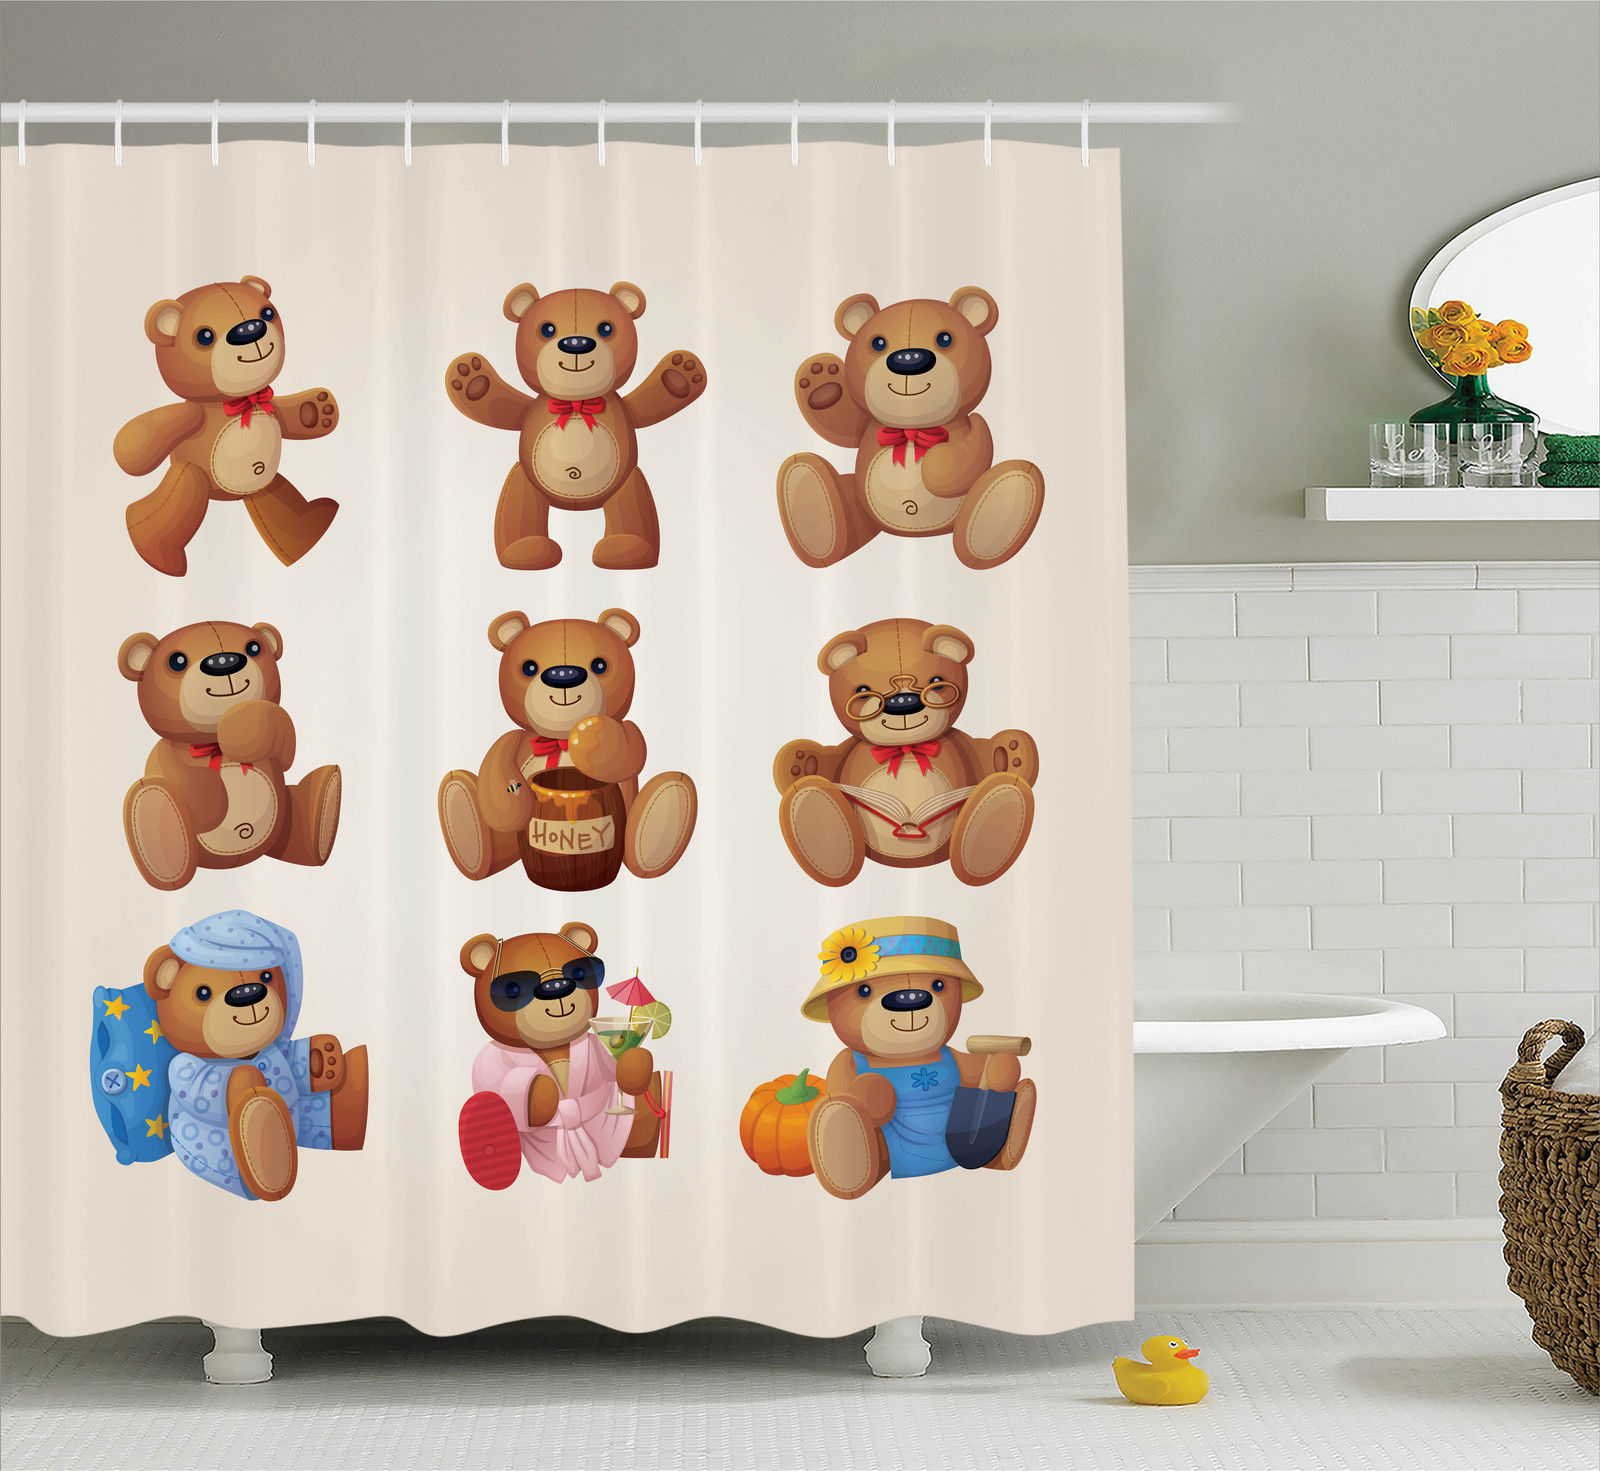 Cartoon Decor  Set Of Cute Happy Teddy Bears With Funny Different Faces Nostalgic Style Kids Decor, Bathroom Accessories, 69W X 84L Inches Extra Long, By Ambesonne